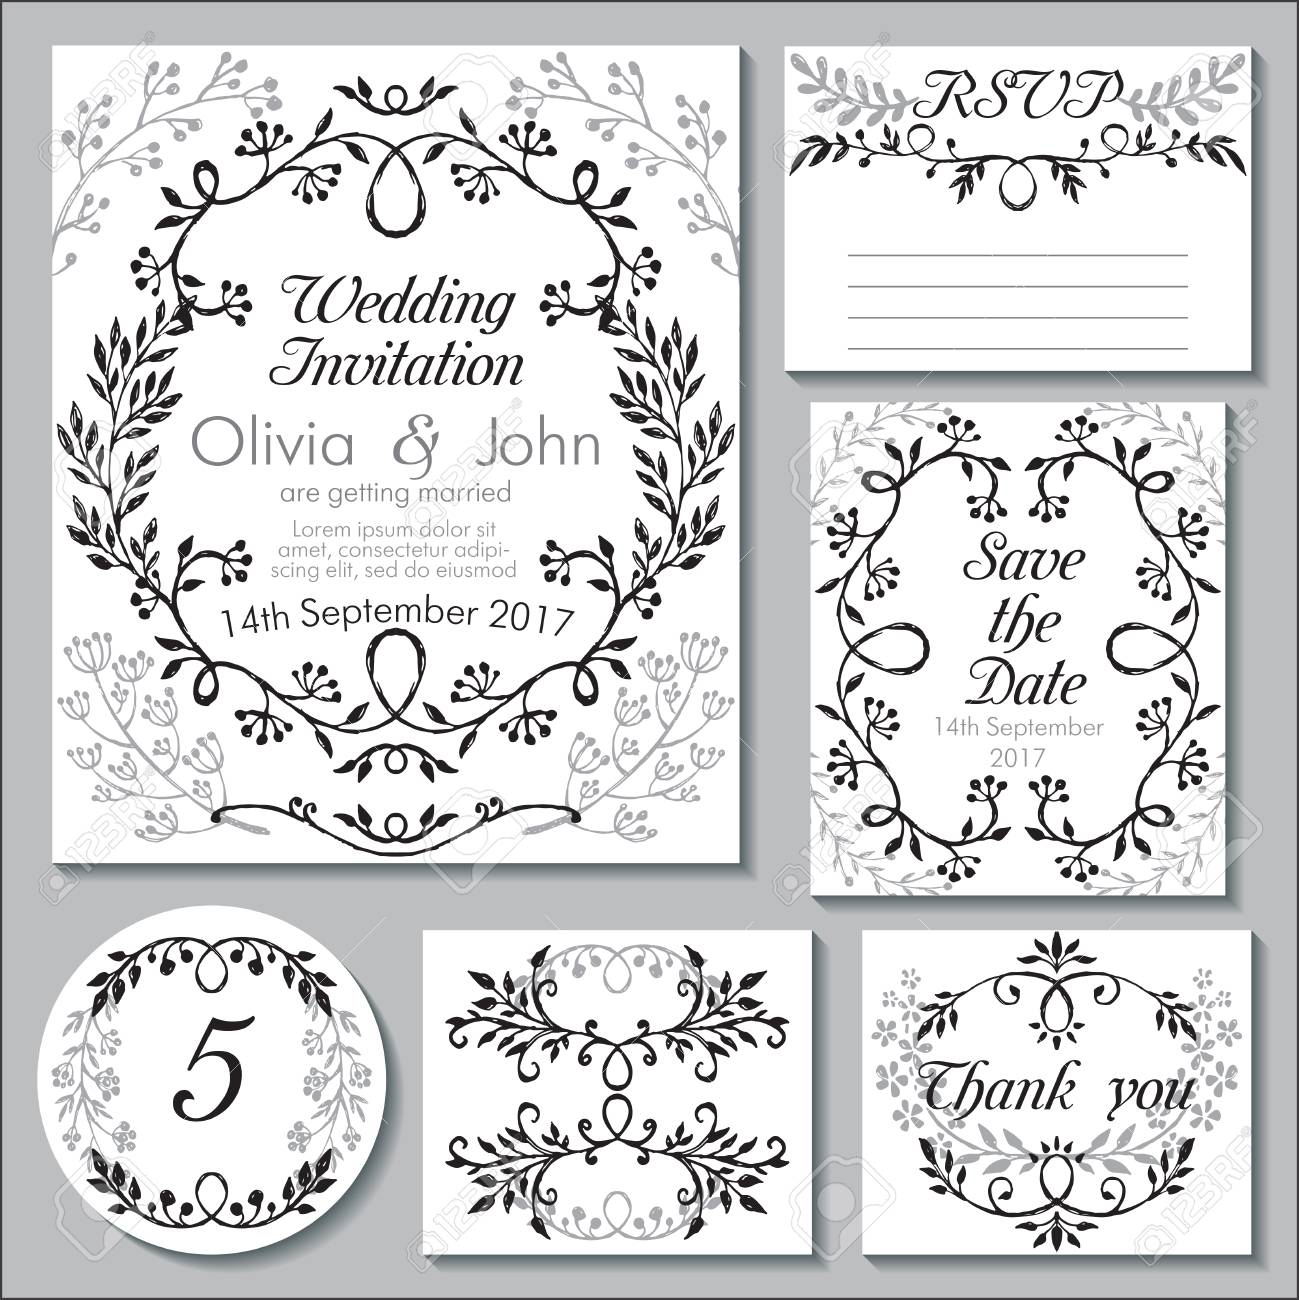 wedding collection templates for invitation thank you card